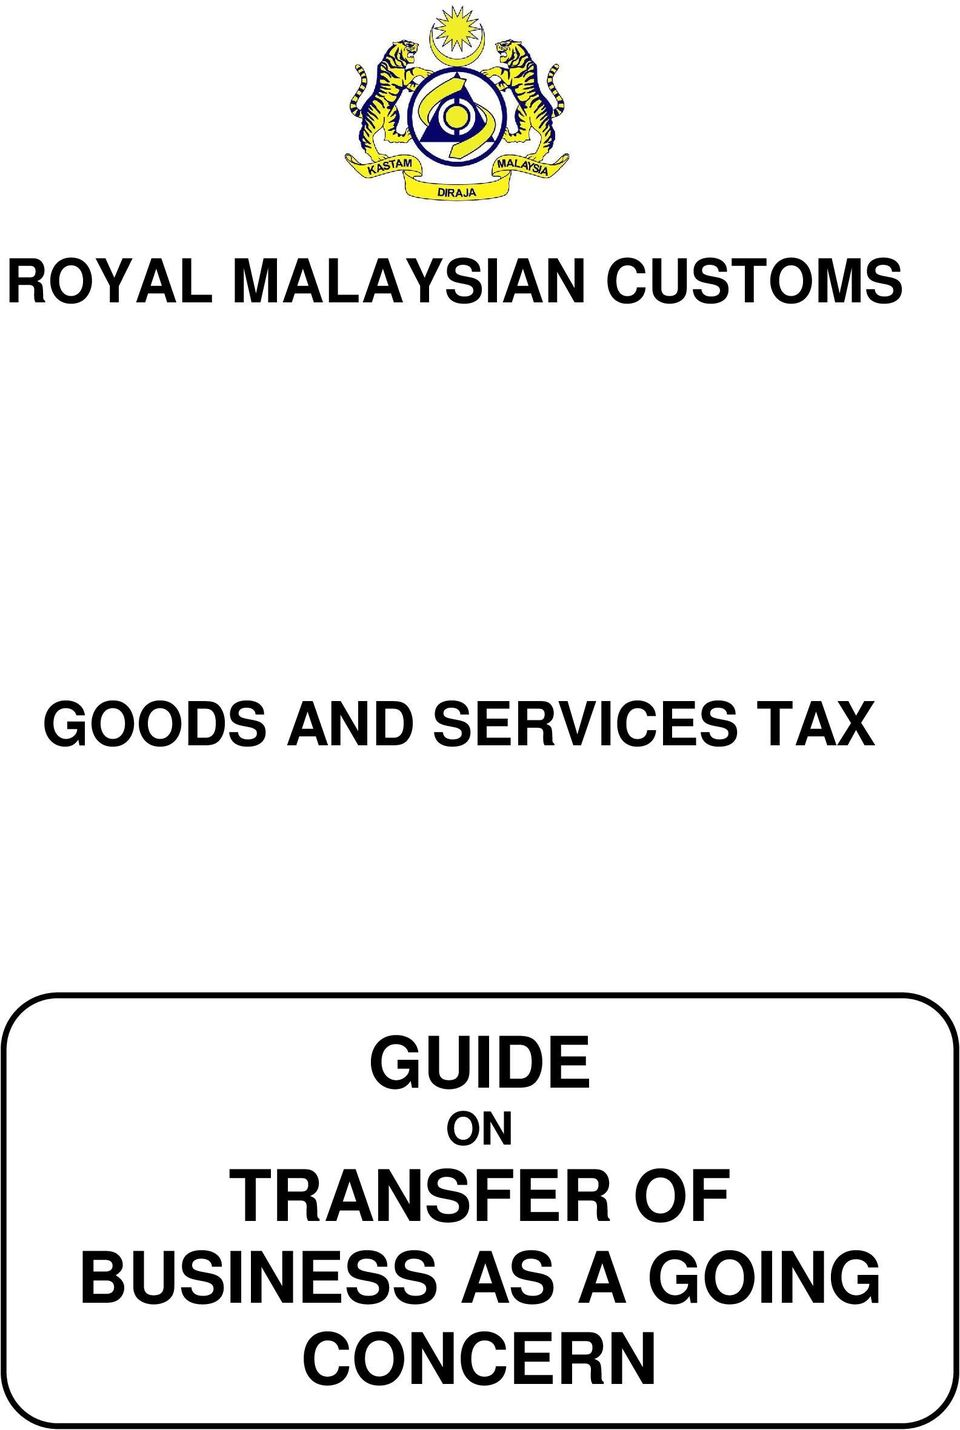 GUIDE ON TRANSFER OF